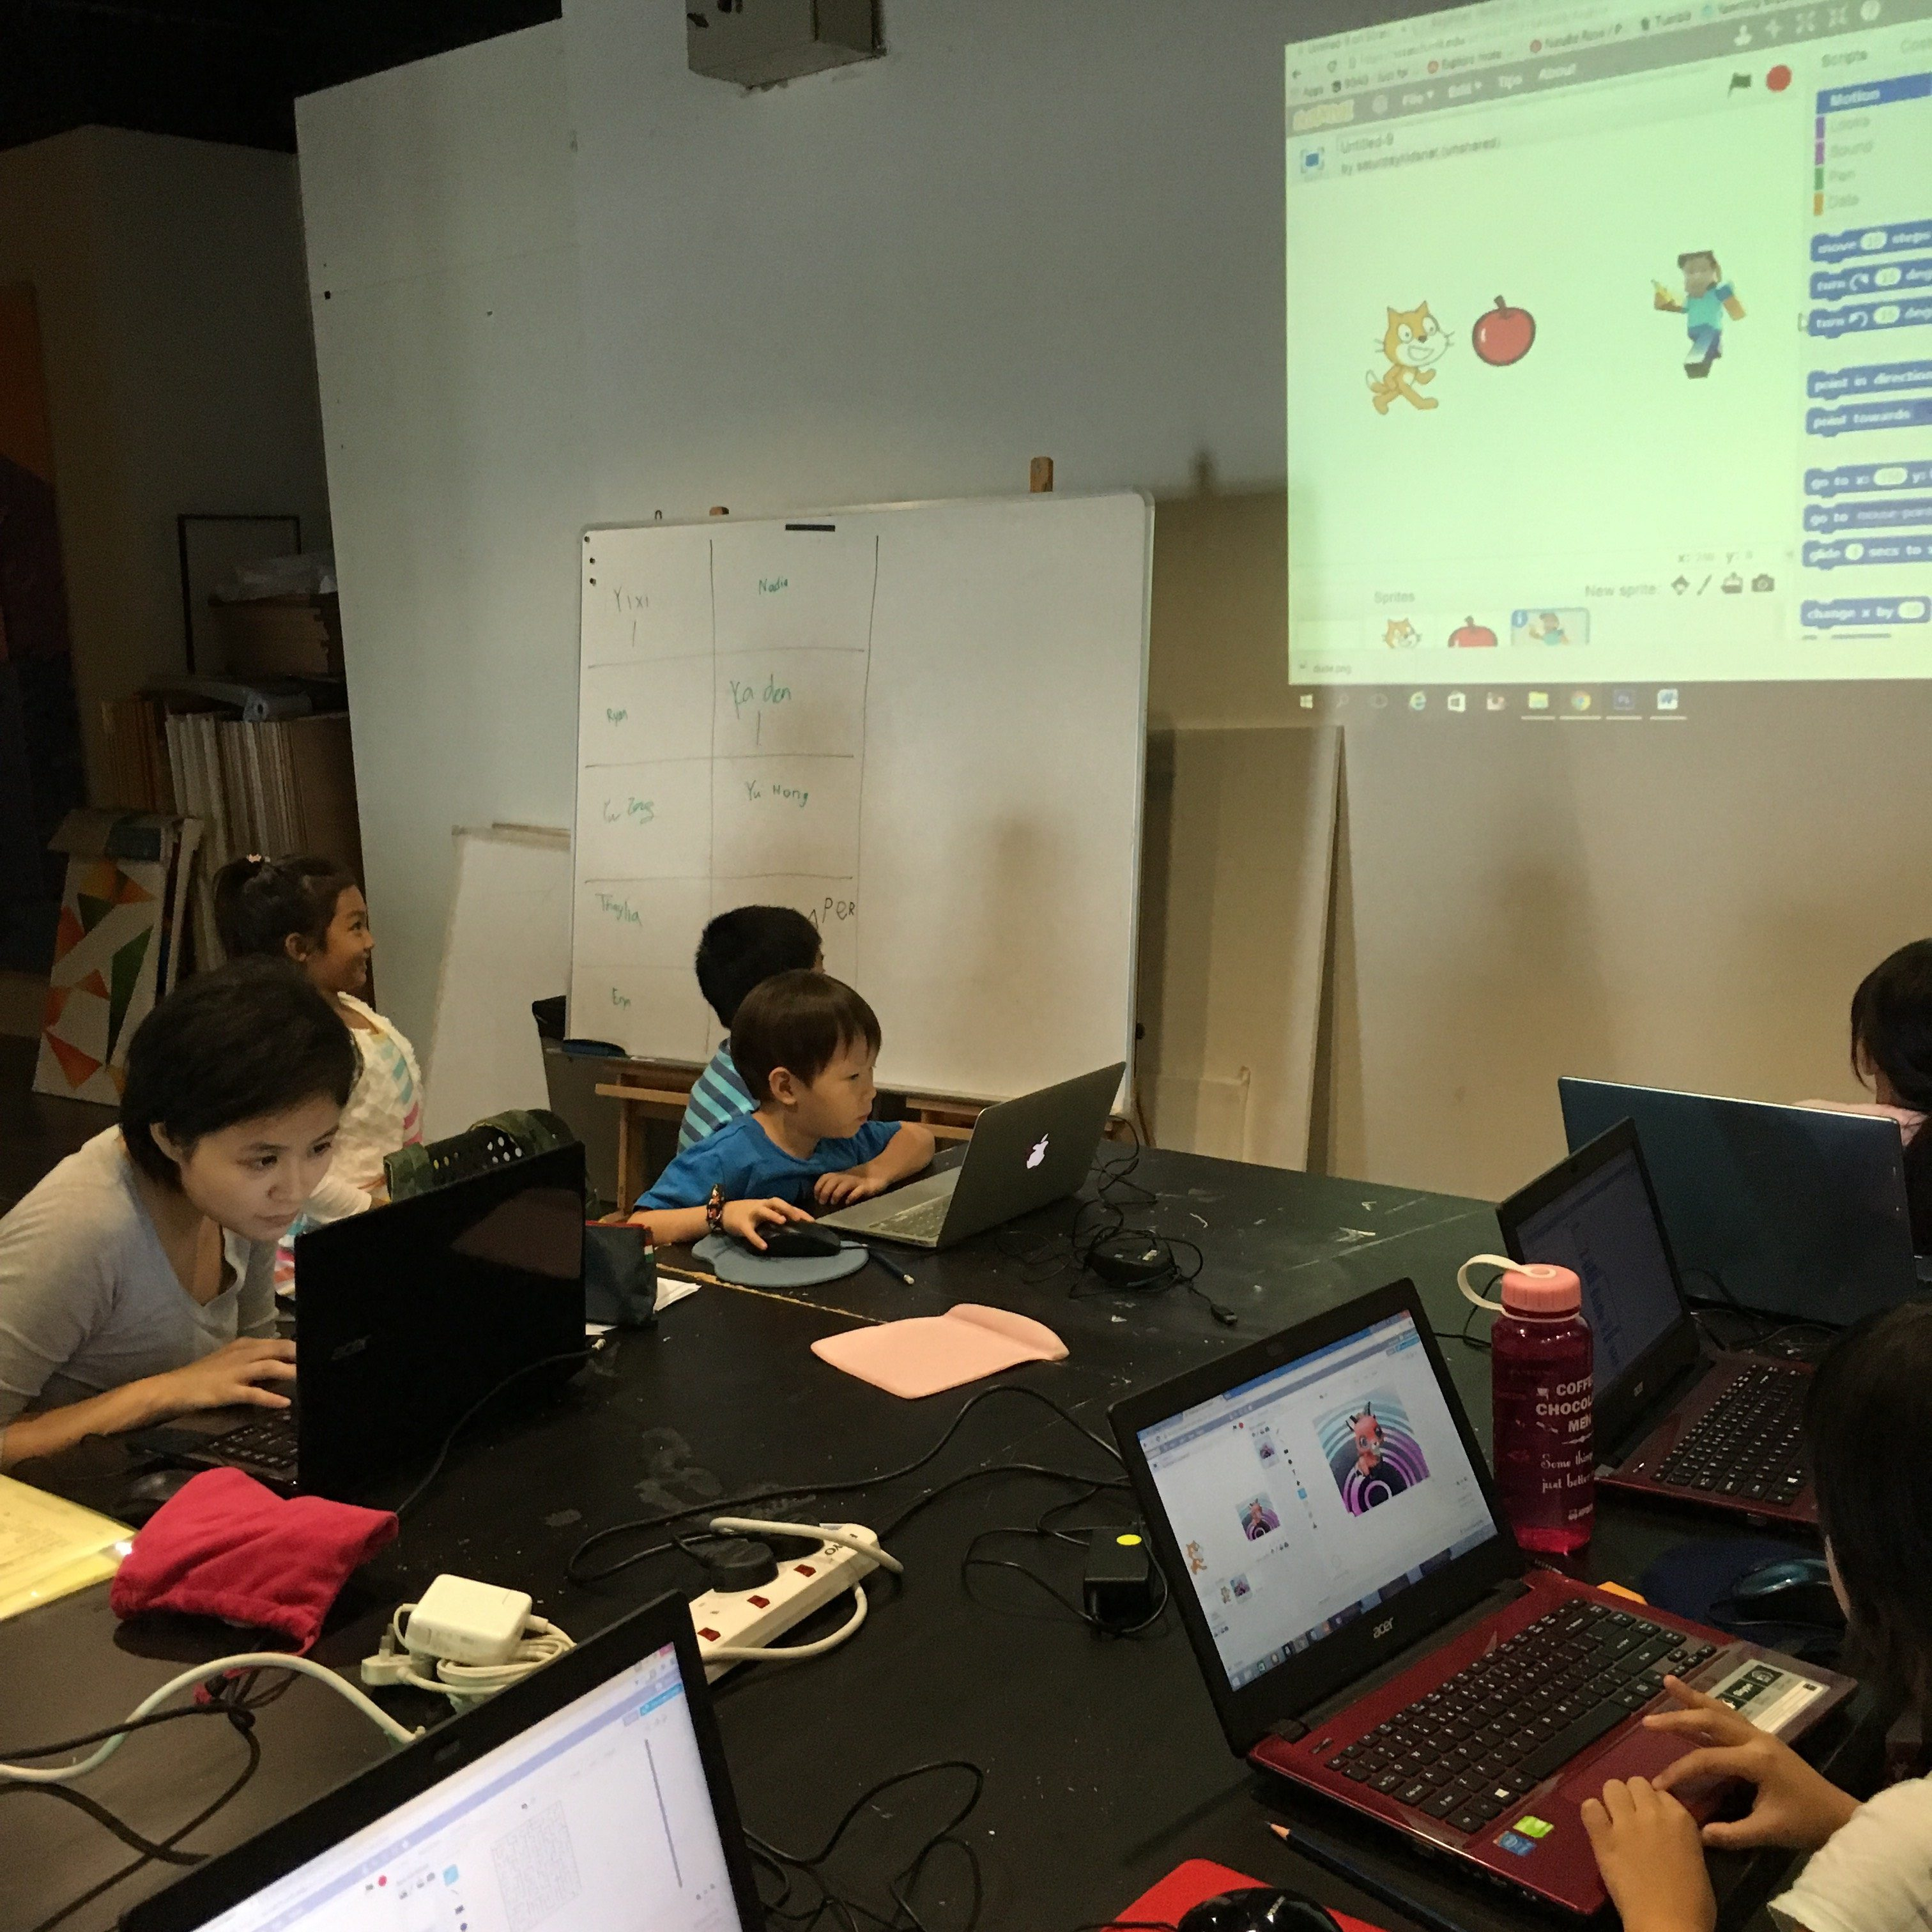 My 5 year old son coding with Scratch at a Saturday Kids coding camp